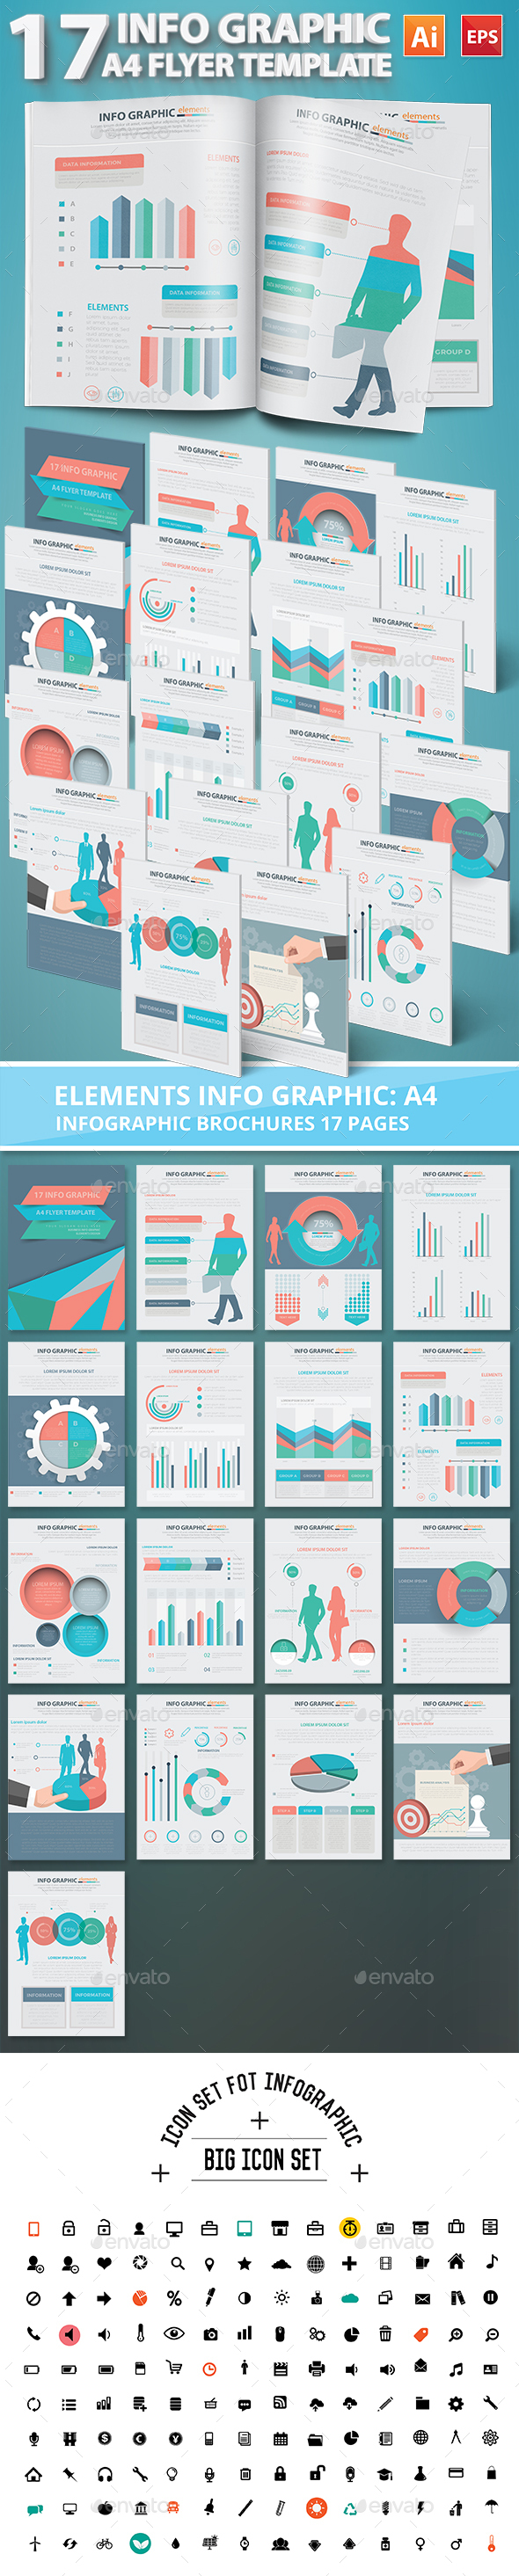 Infographic Elements Design 17 Pages - Infographics